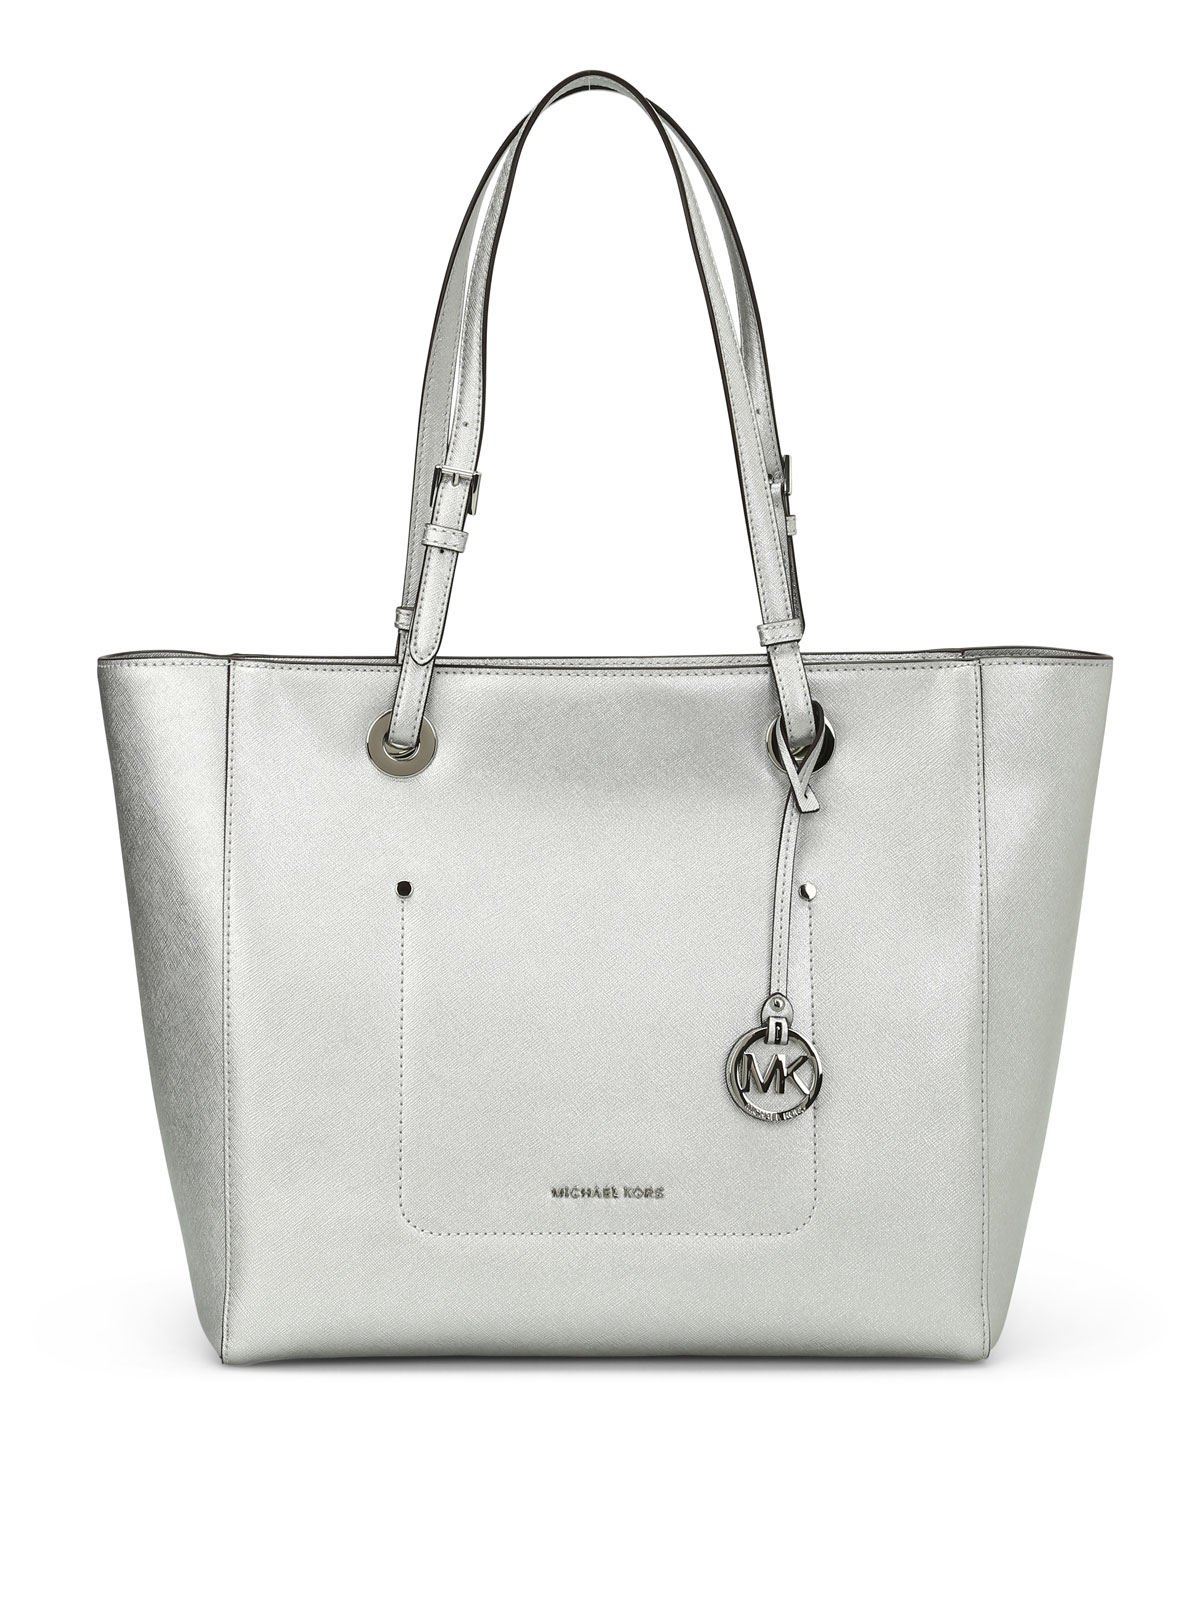 bfbcfc4ea52533 Michael Kors - Walsh saffiano leather tote - totes bags - 30T7MWAT4M040